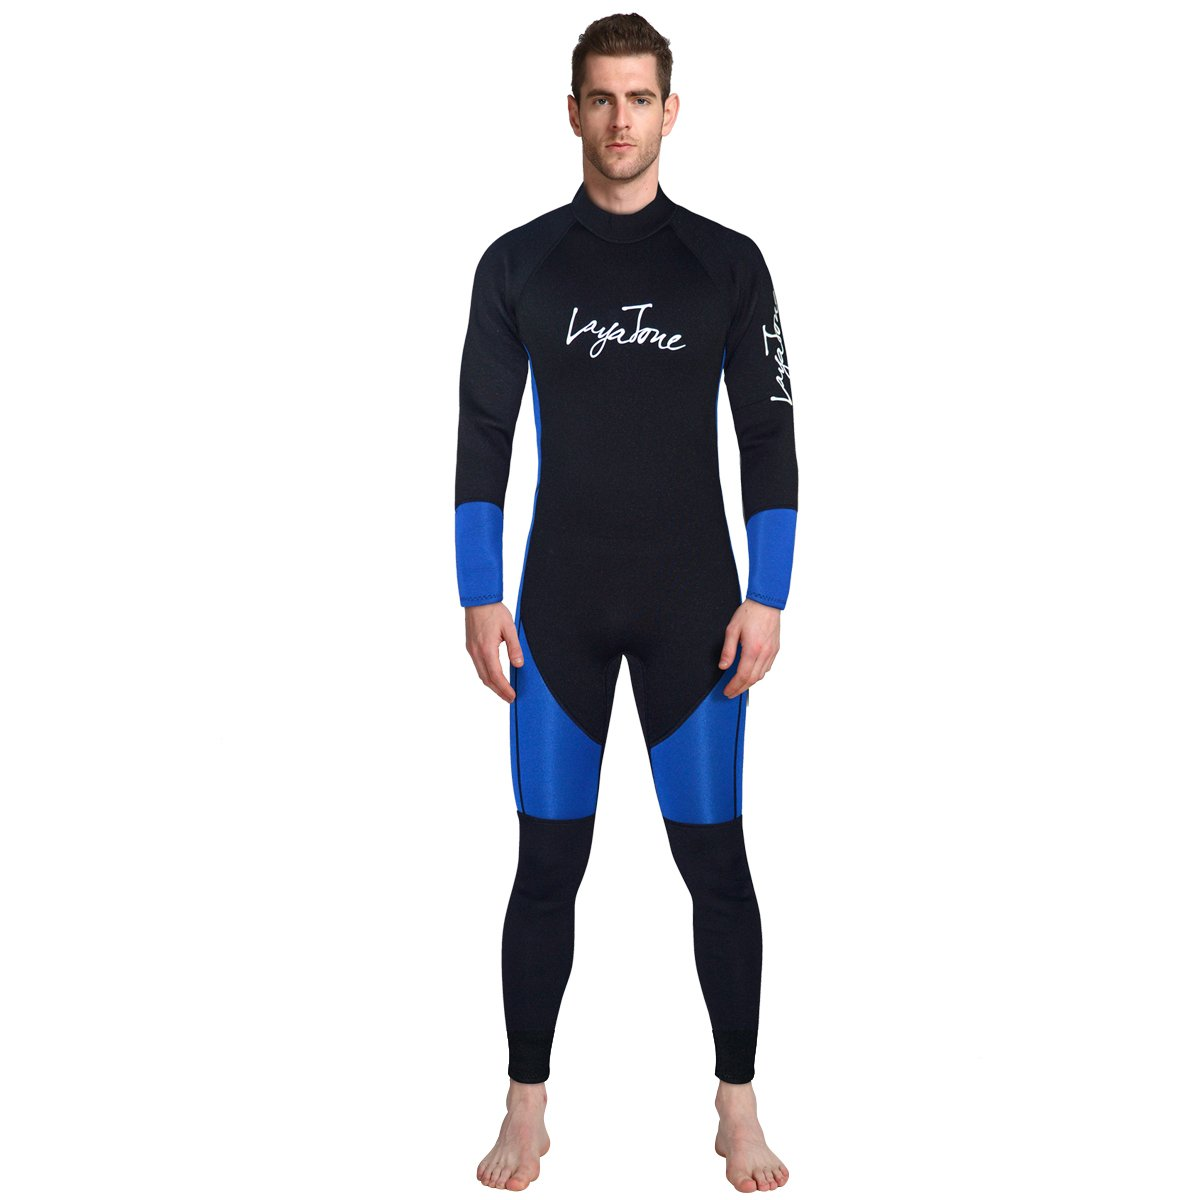 8a663a78031 Wetsuit Men - LAYATOEN Premium Neoprene 3mm Diving Suit Full Suit Long  Sleeve Surfing Suit Keep Warm One Piece Swimsuit for Women - Snorkeling  Scuba Diving ...